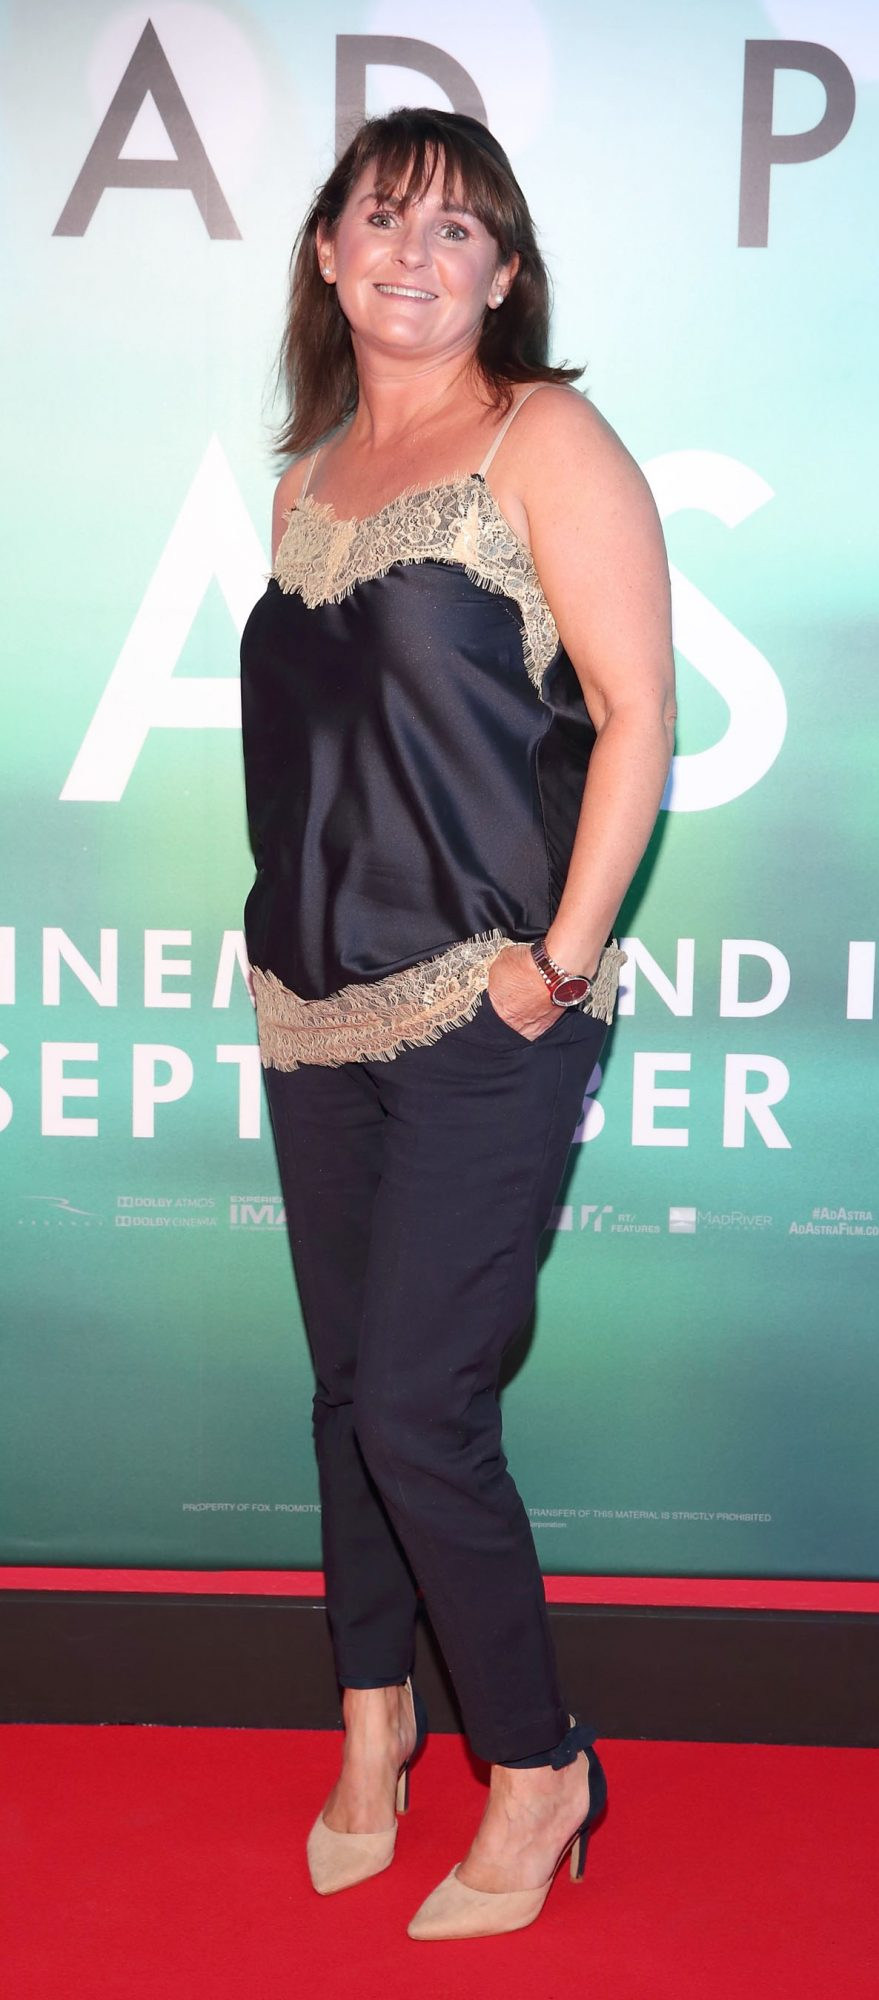 Rachel Finnegan at the special preview screening of Ad Astra at Cineworld, Dublin. Pic: Brian McEvoy Photography